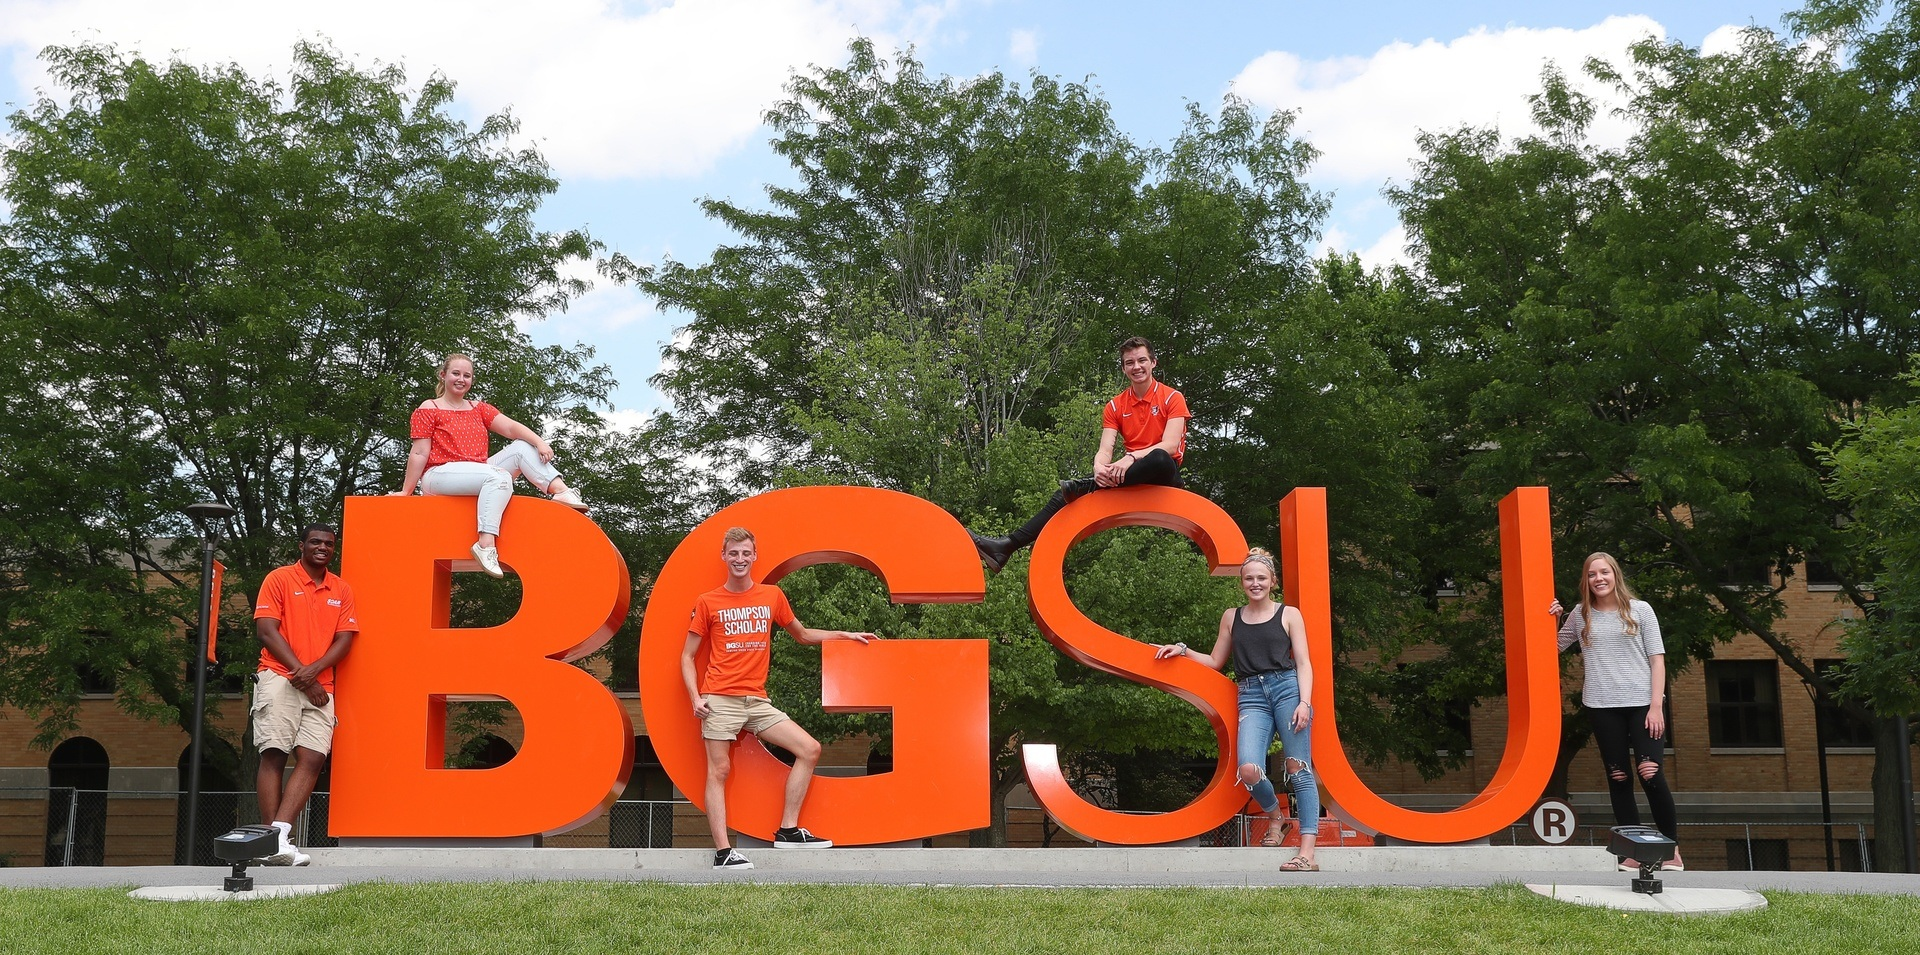 bgsu sign and students image